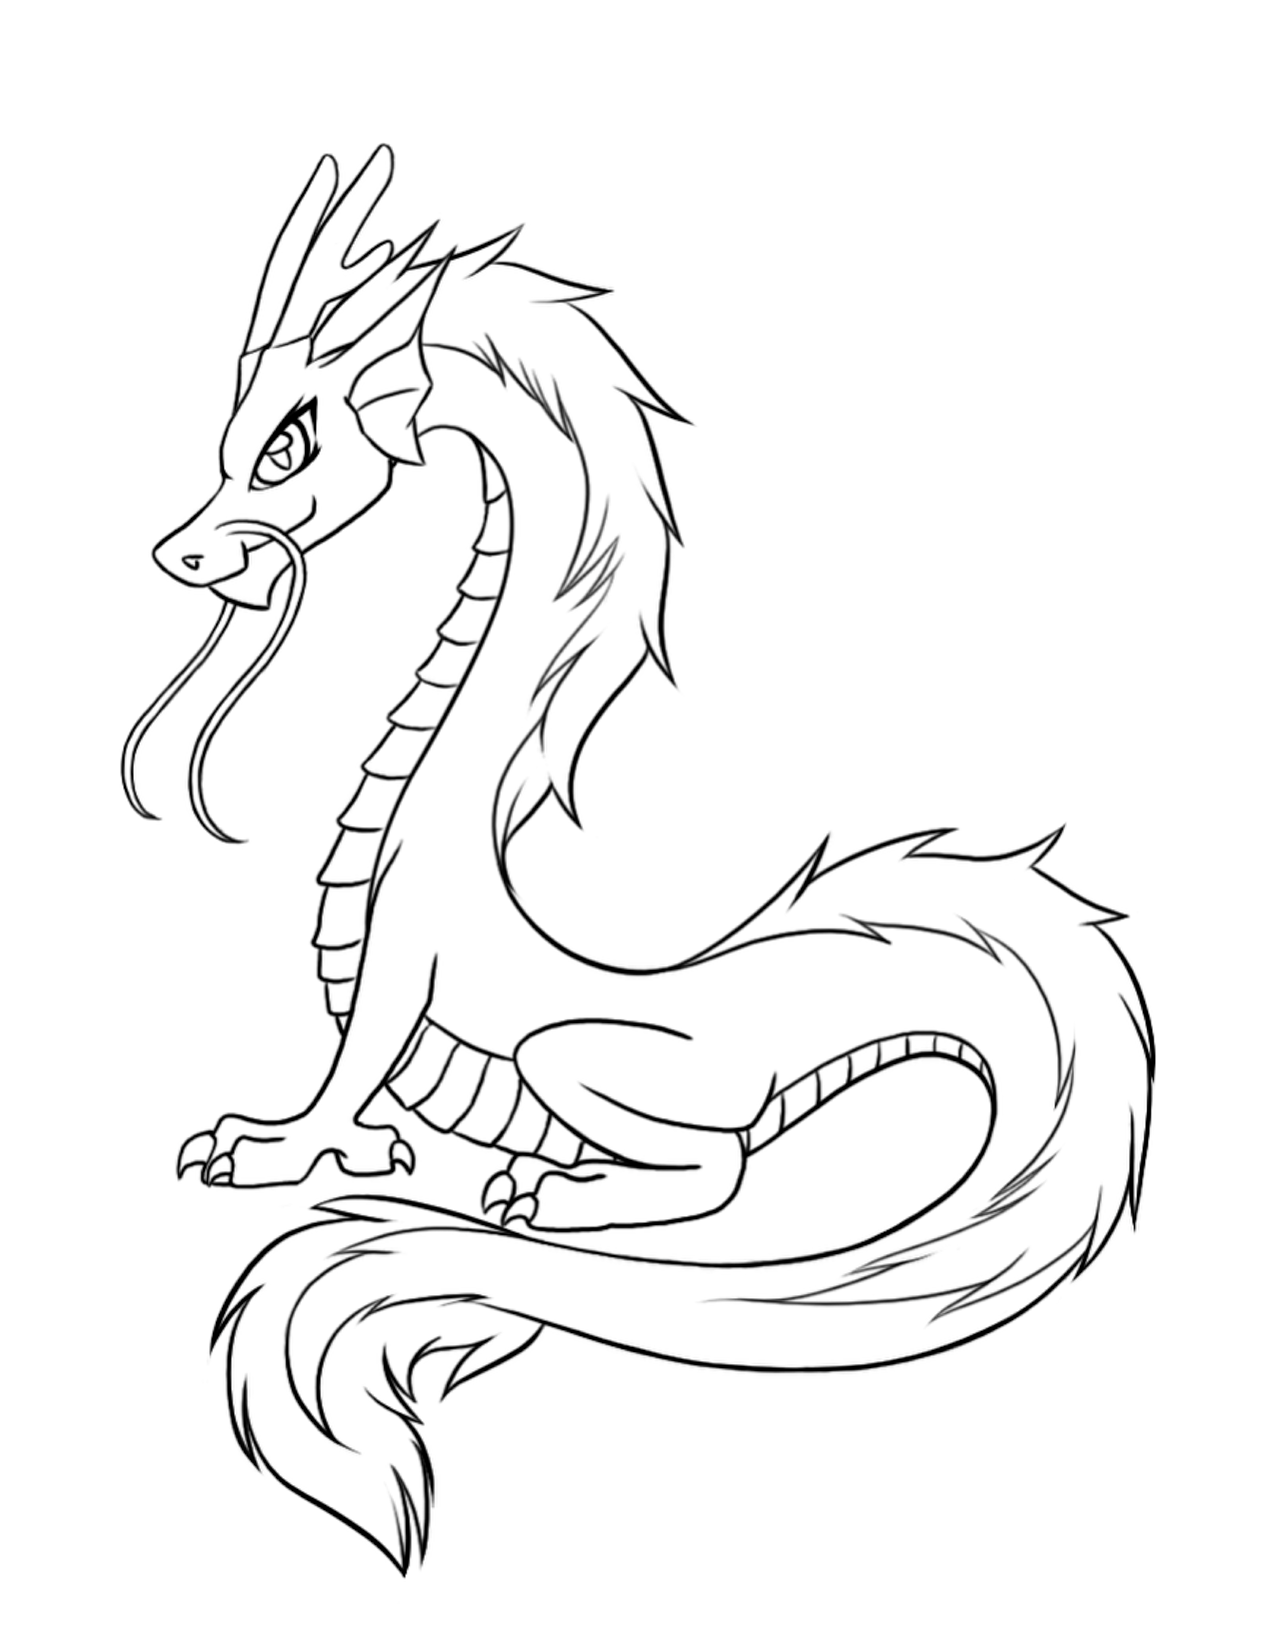 kawaii cute dragon coloring pages mouse and dragon by h0lyhandgrenade on deviantart dragon coloring pages kawaii cute